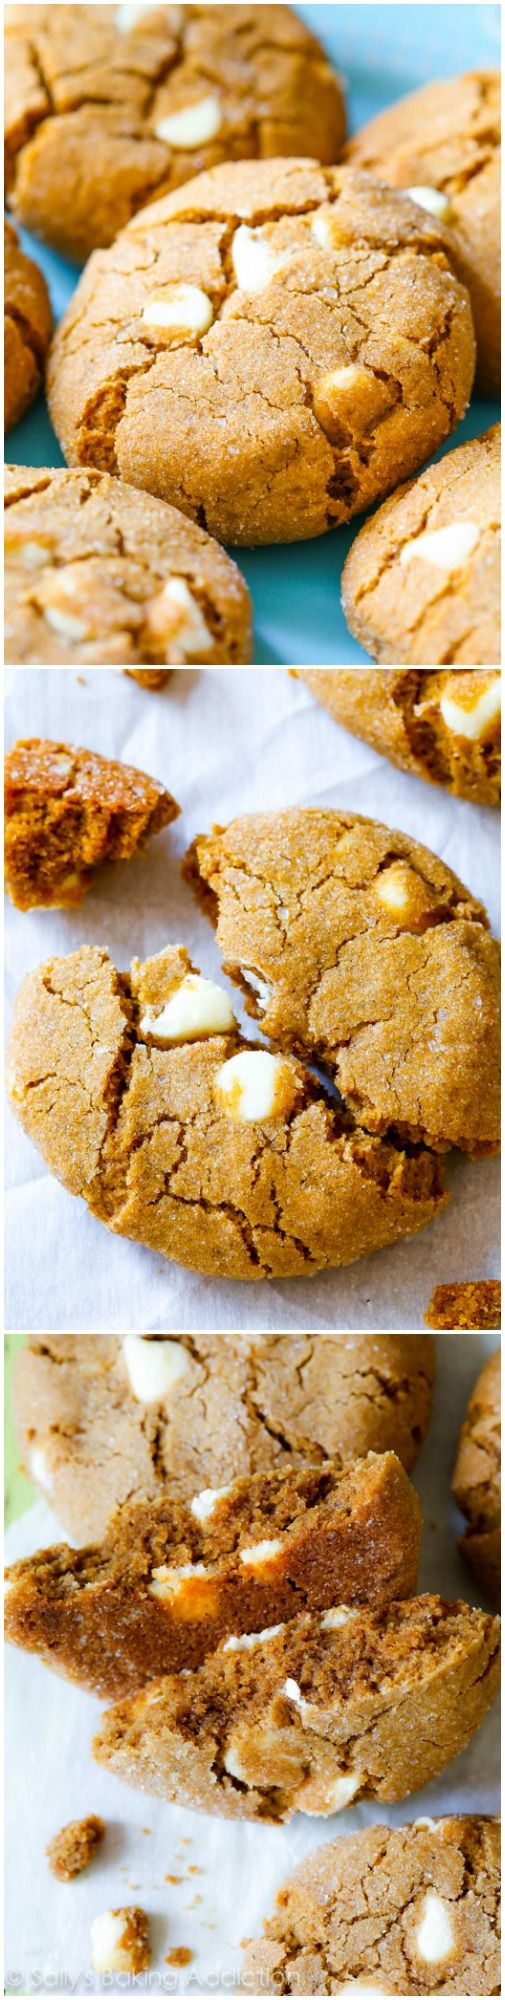 chip cookies brown butter cookies brown butter brown sugar molasses ...